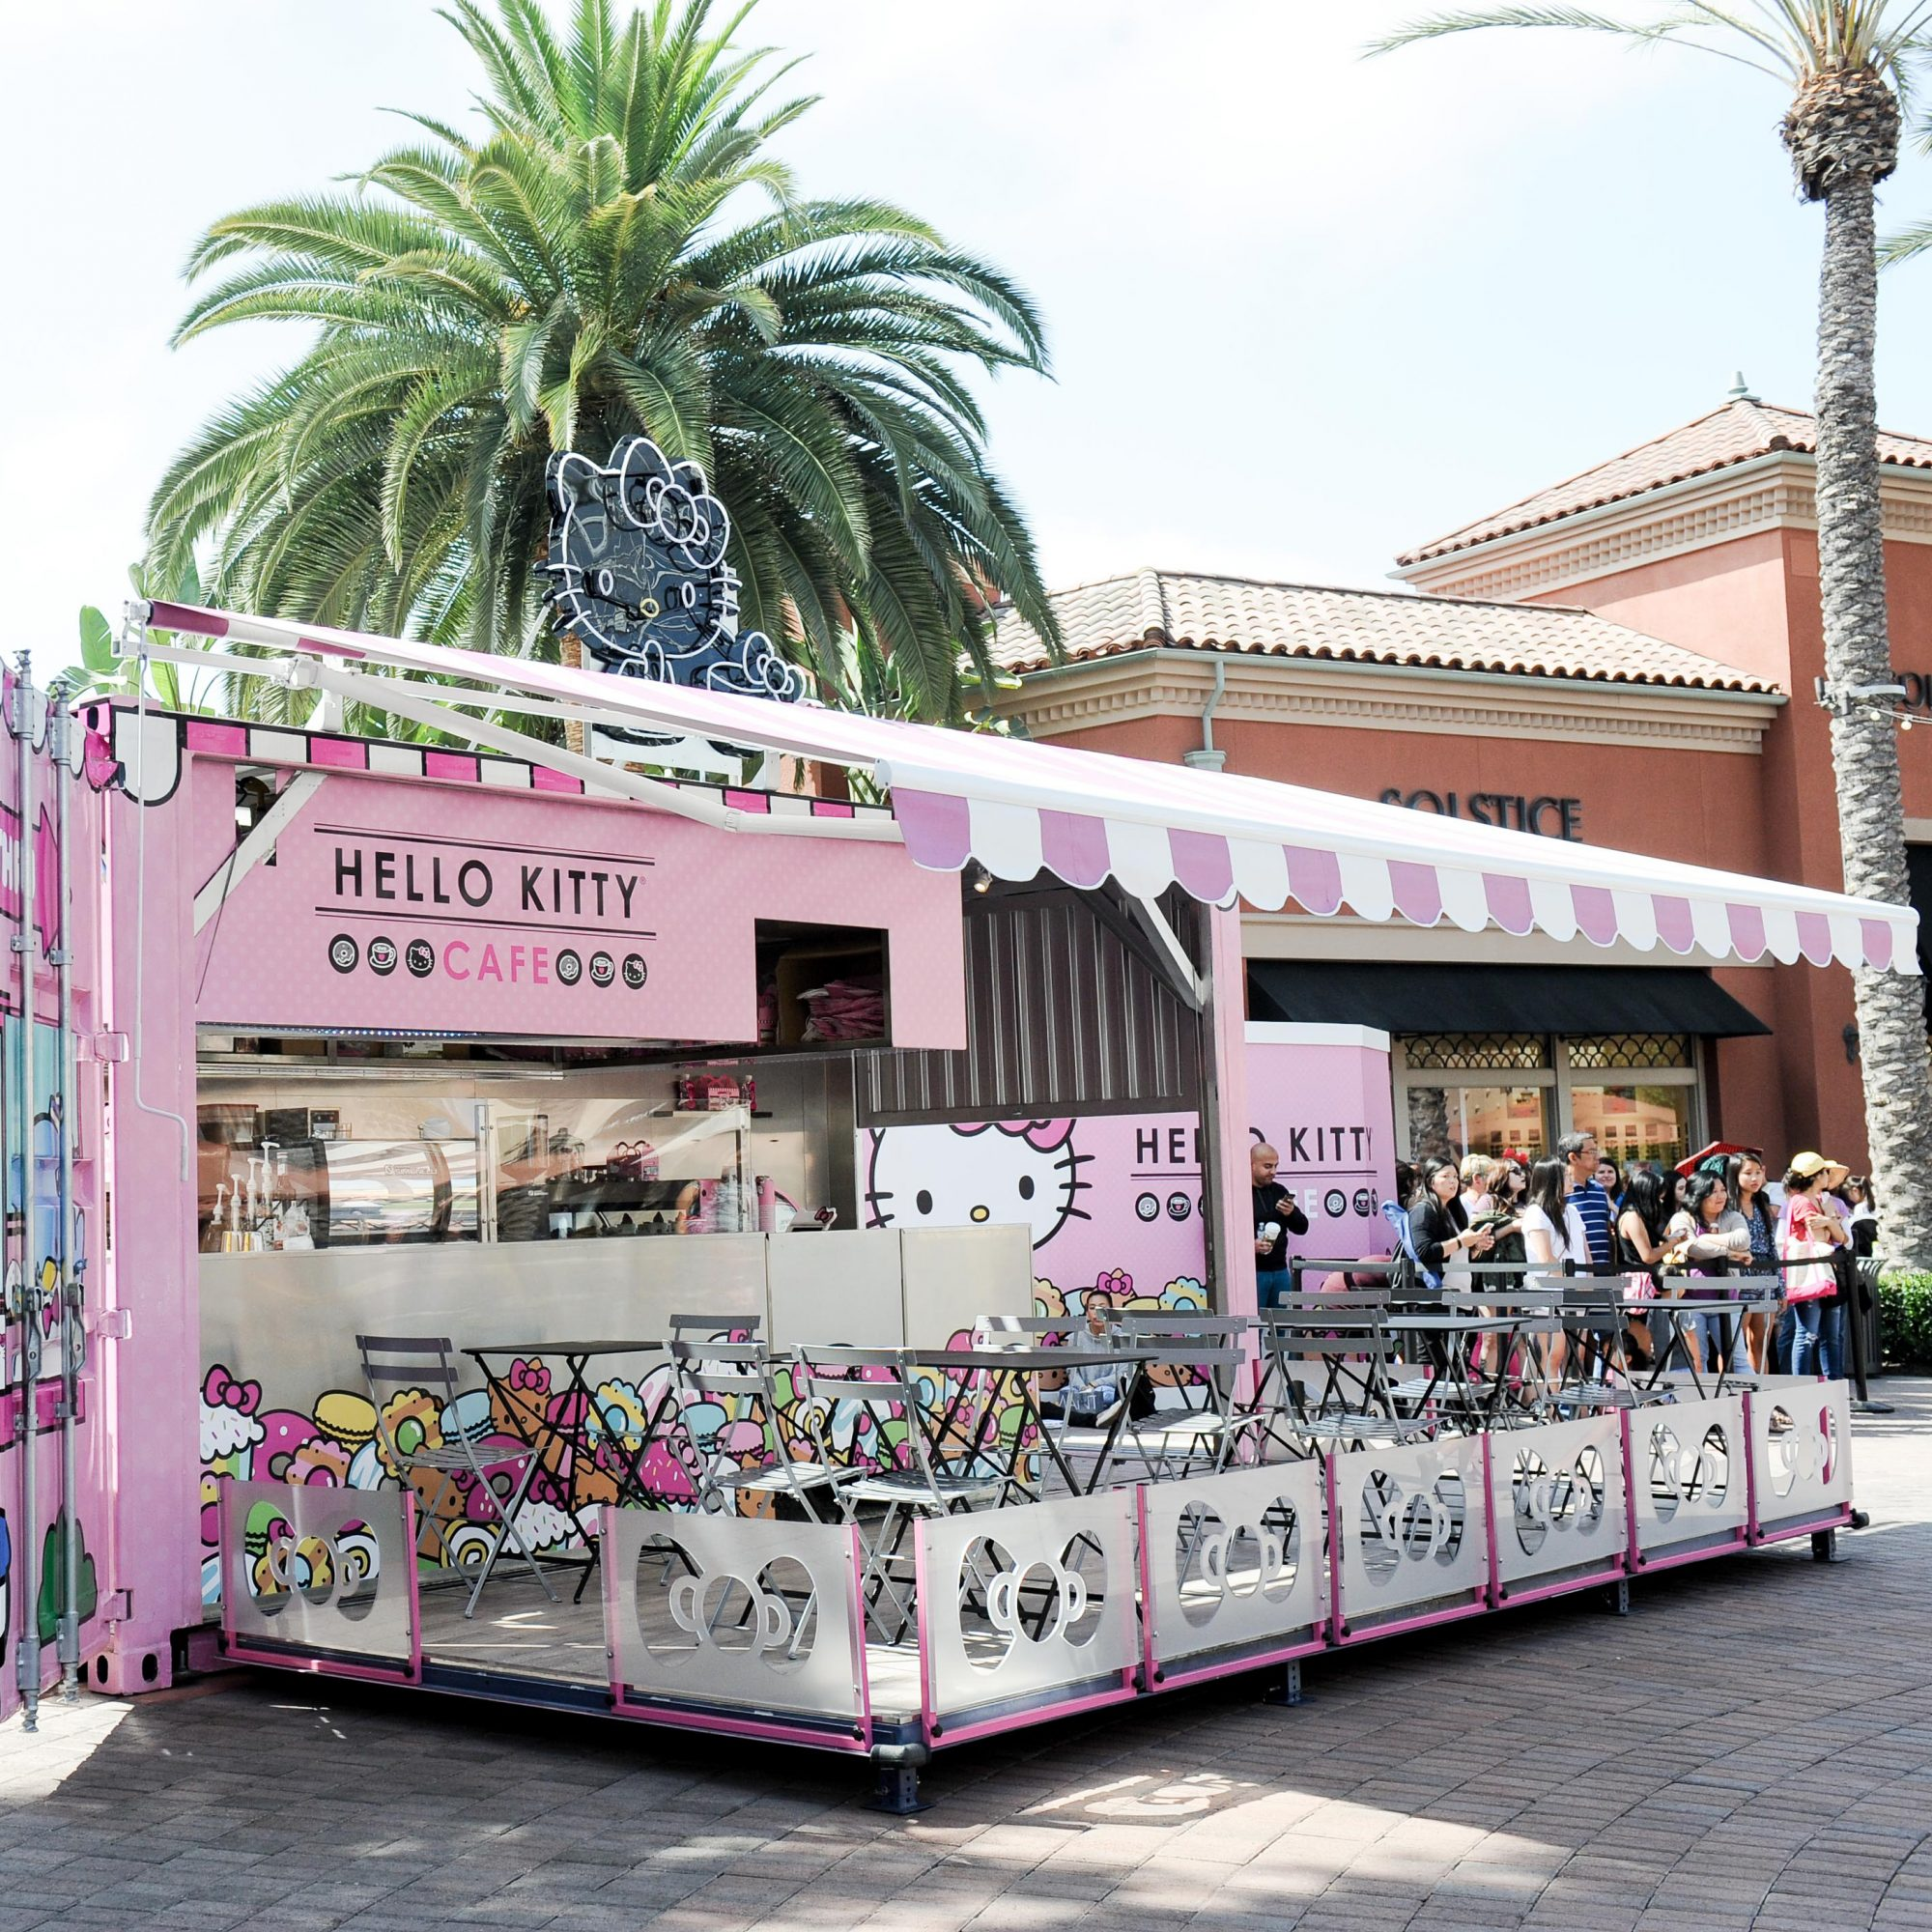 hello-kitty-cafe-fwx-2